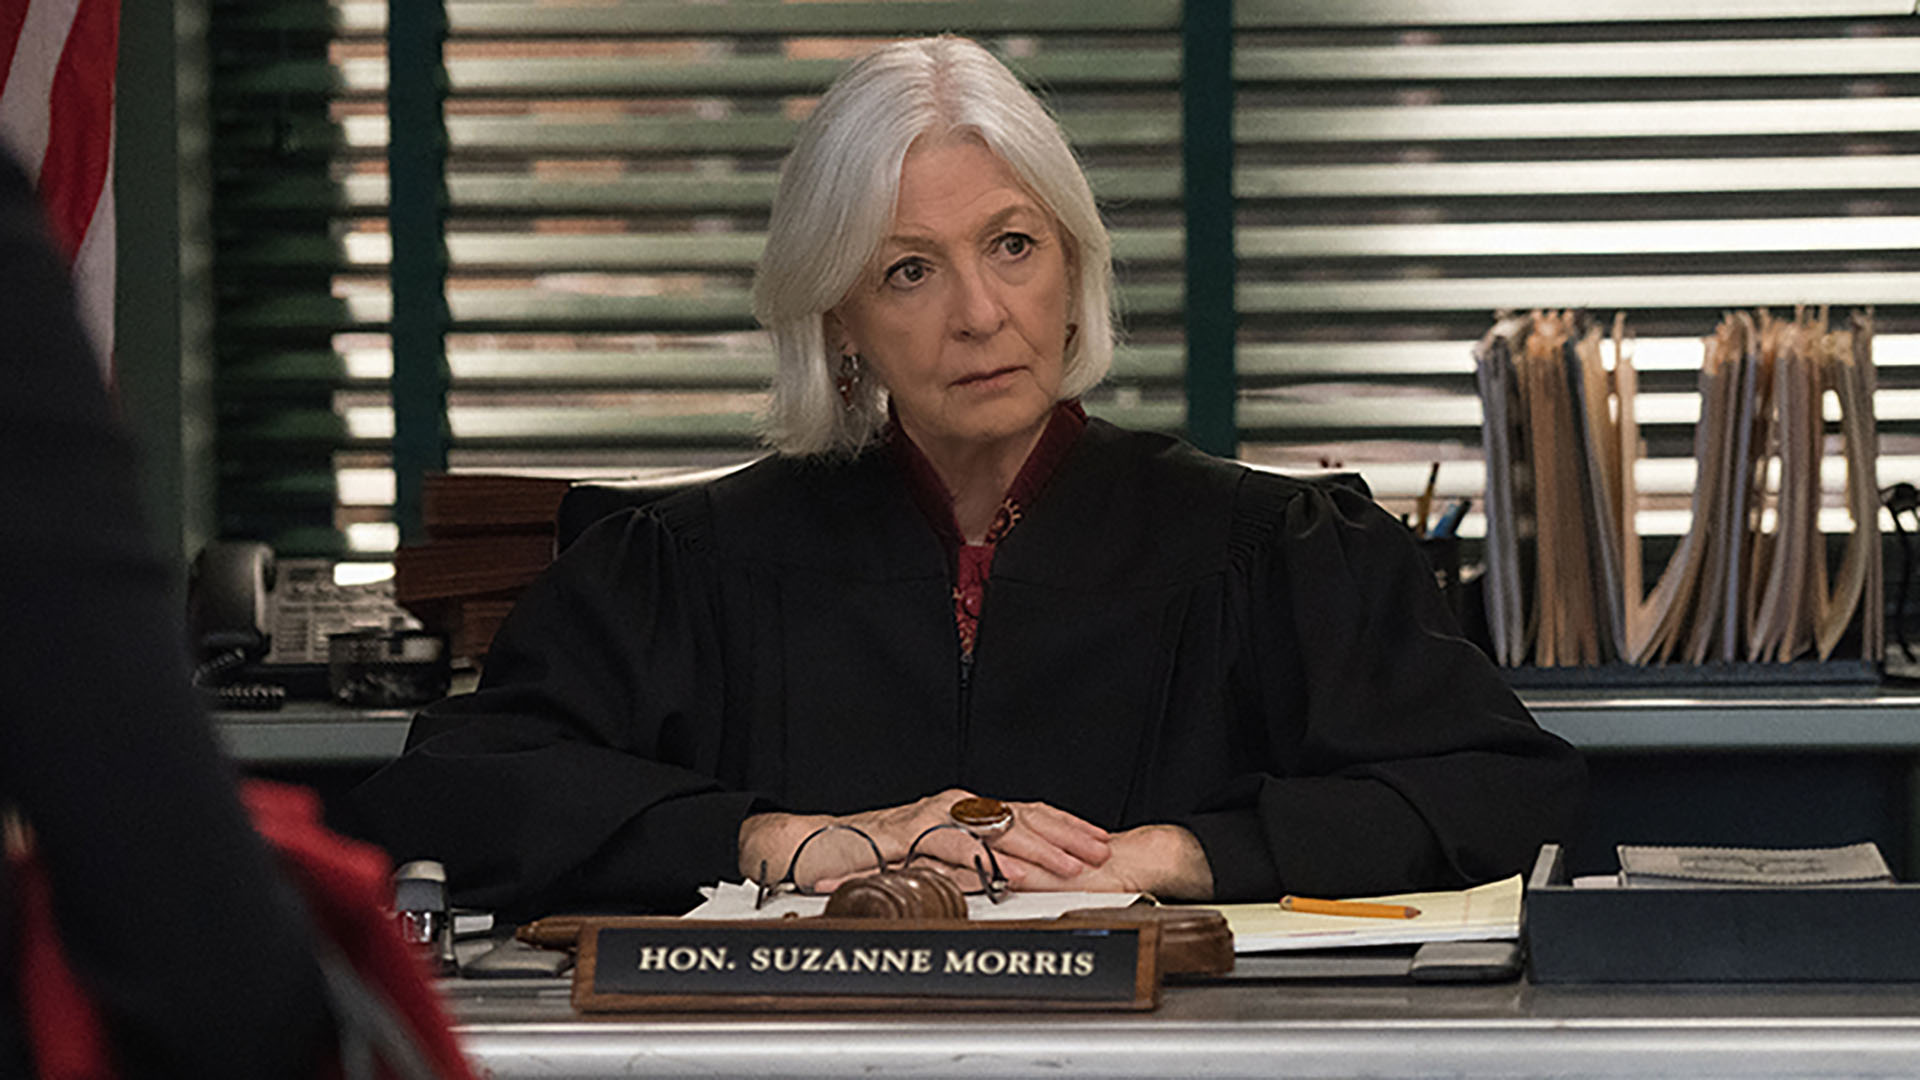 Jane Alexander as Judge Suzanne Morris